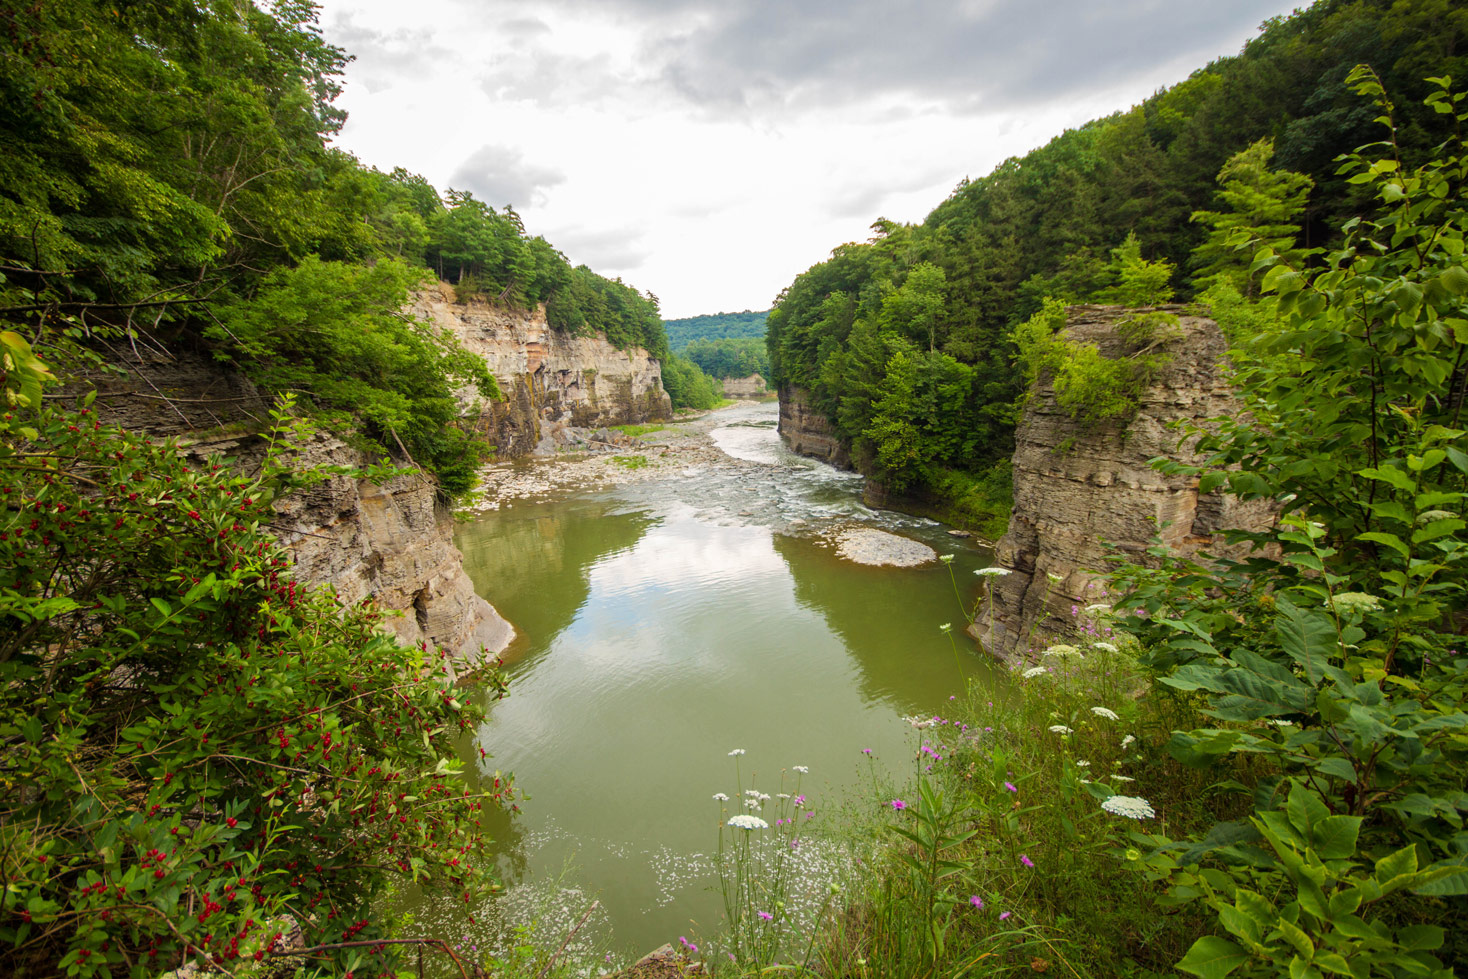 The walls of the gorge tower over the Letchworth River in Letchworth State Park with kids in New York State